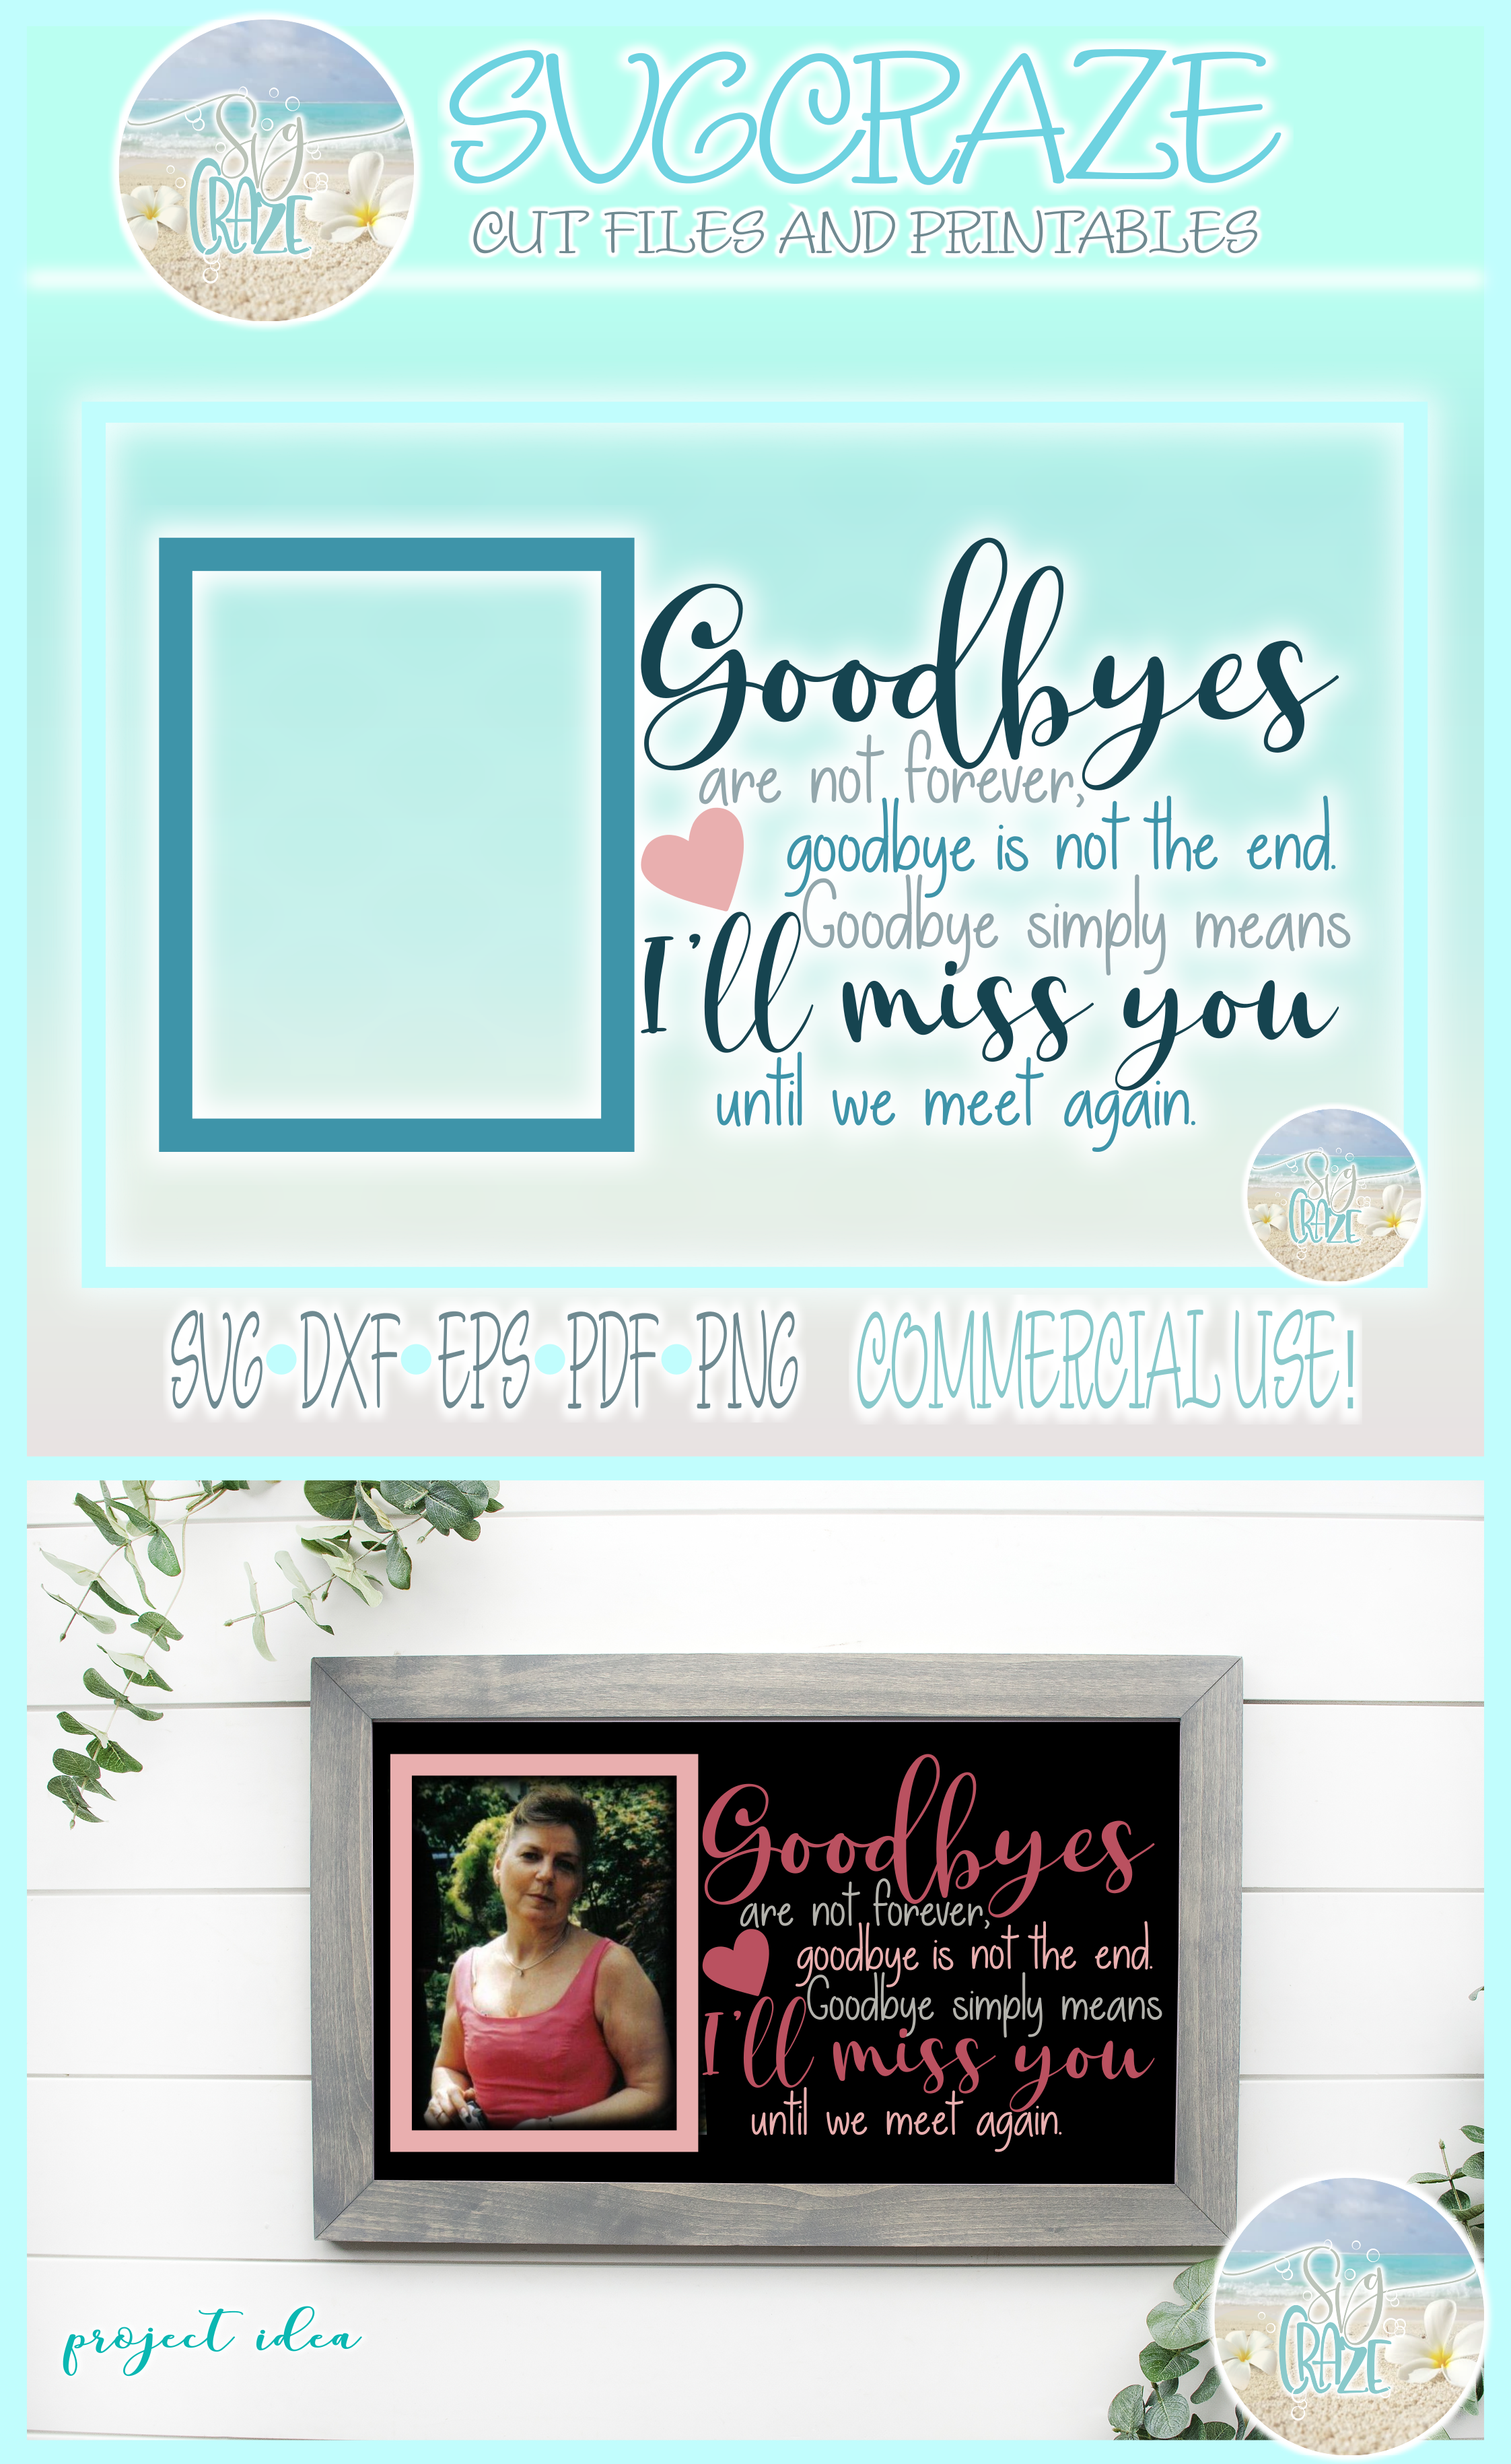 Goodbyes Are Not Forever I'll Miss You Until We Meet Again example image 4